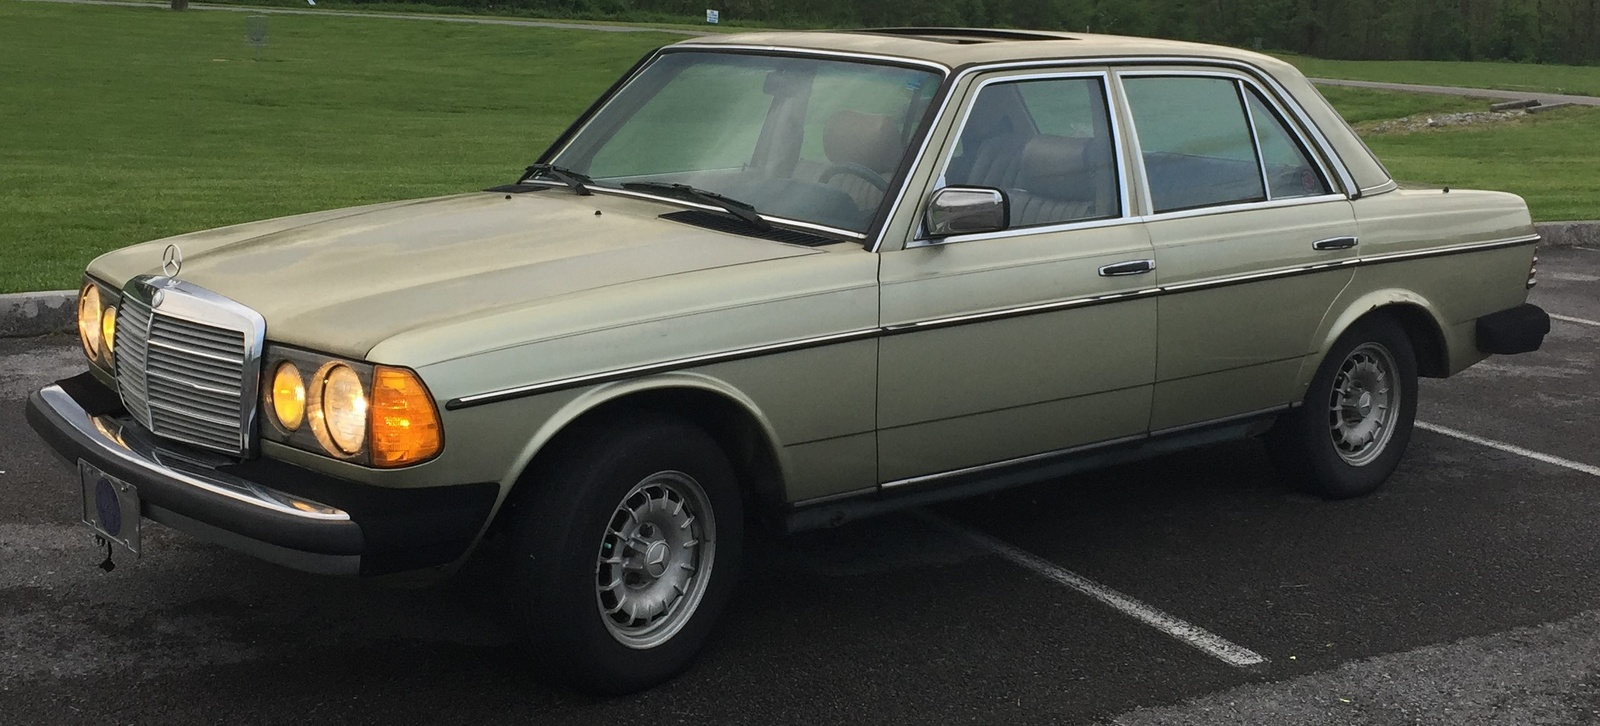 1984 mercedes benz 300 class pictures cargurus for Mercedes benz gle 300d review